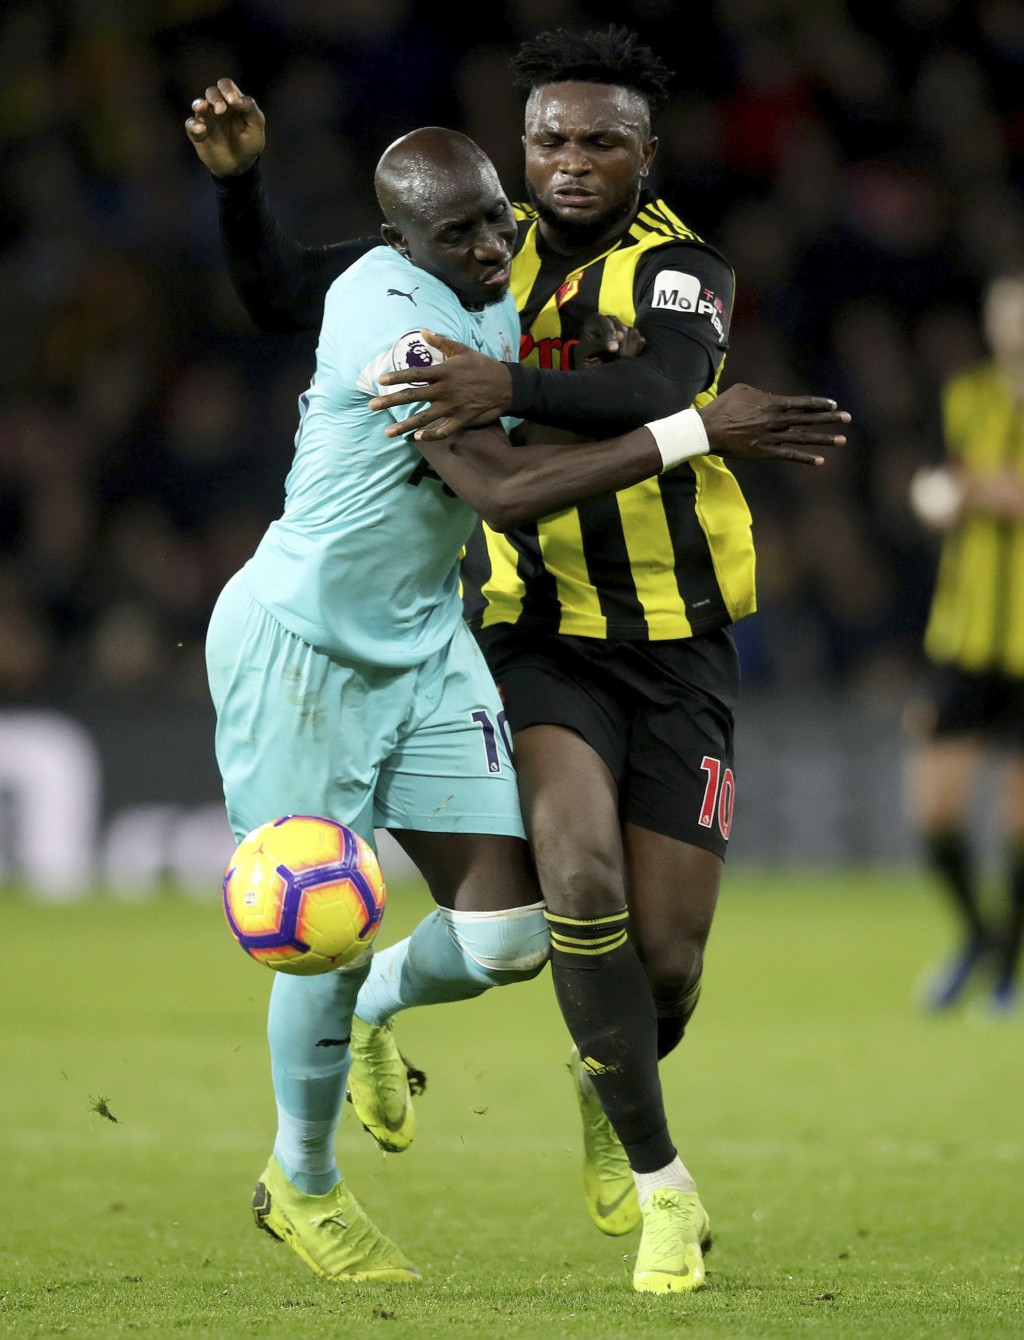 Newcastle United's Mohamed Diame, left, chases after the ball with Watford's Isaac Success, during their English Premier League soccer match, at Vicar...